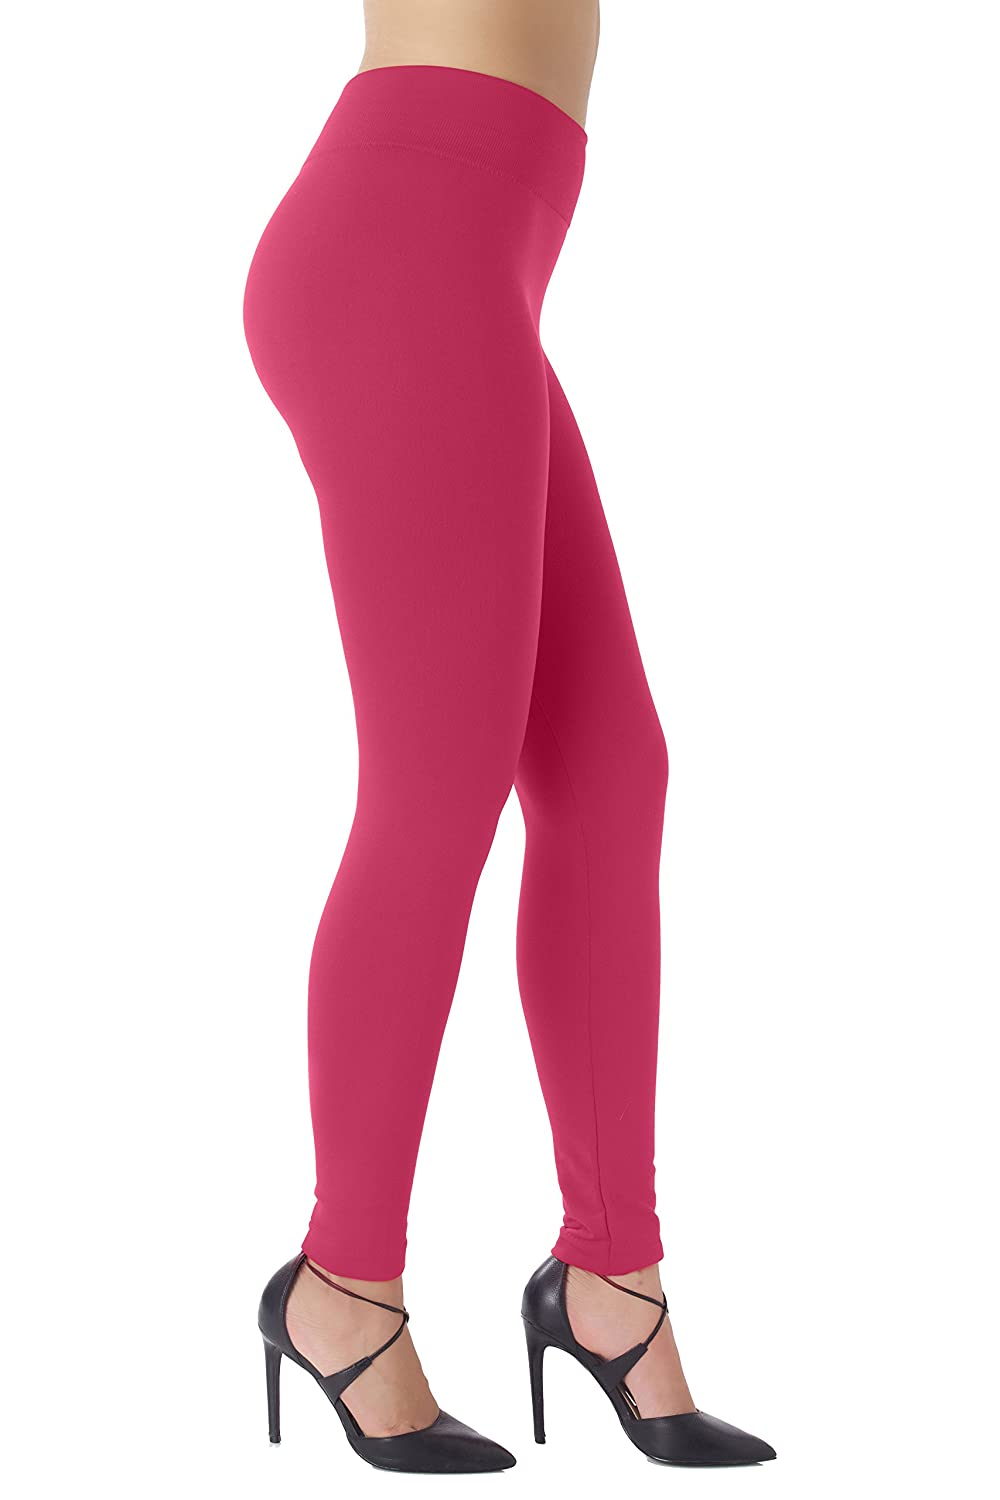 Ultrasoft Premium Quality NYFC Warm Fleece Lined Leggings for Women High Waisted Slimming 10 Winter Colors